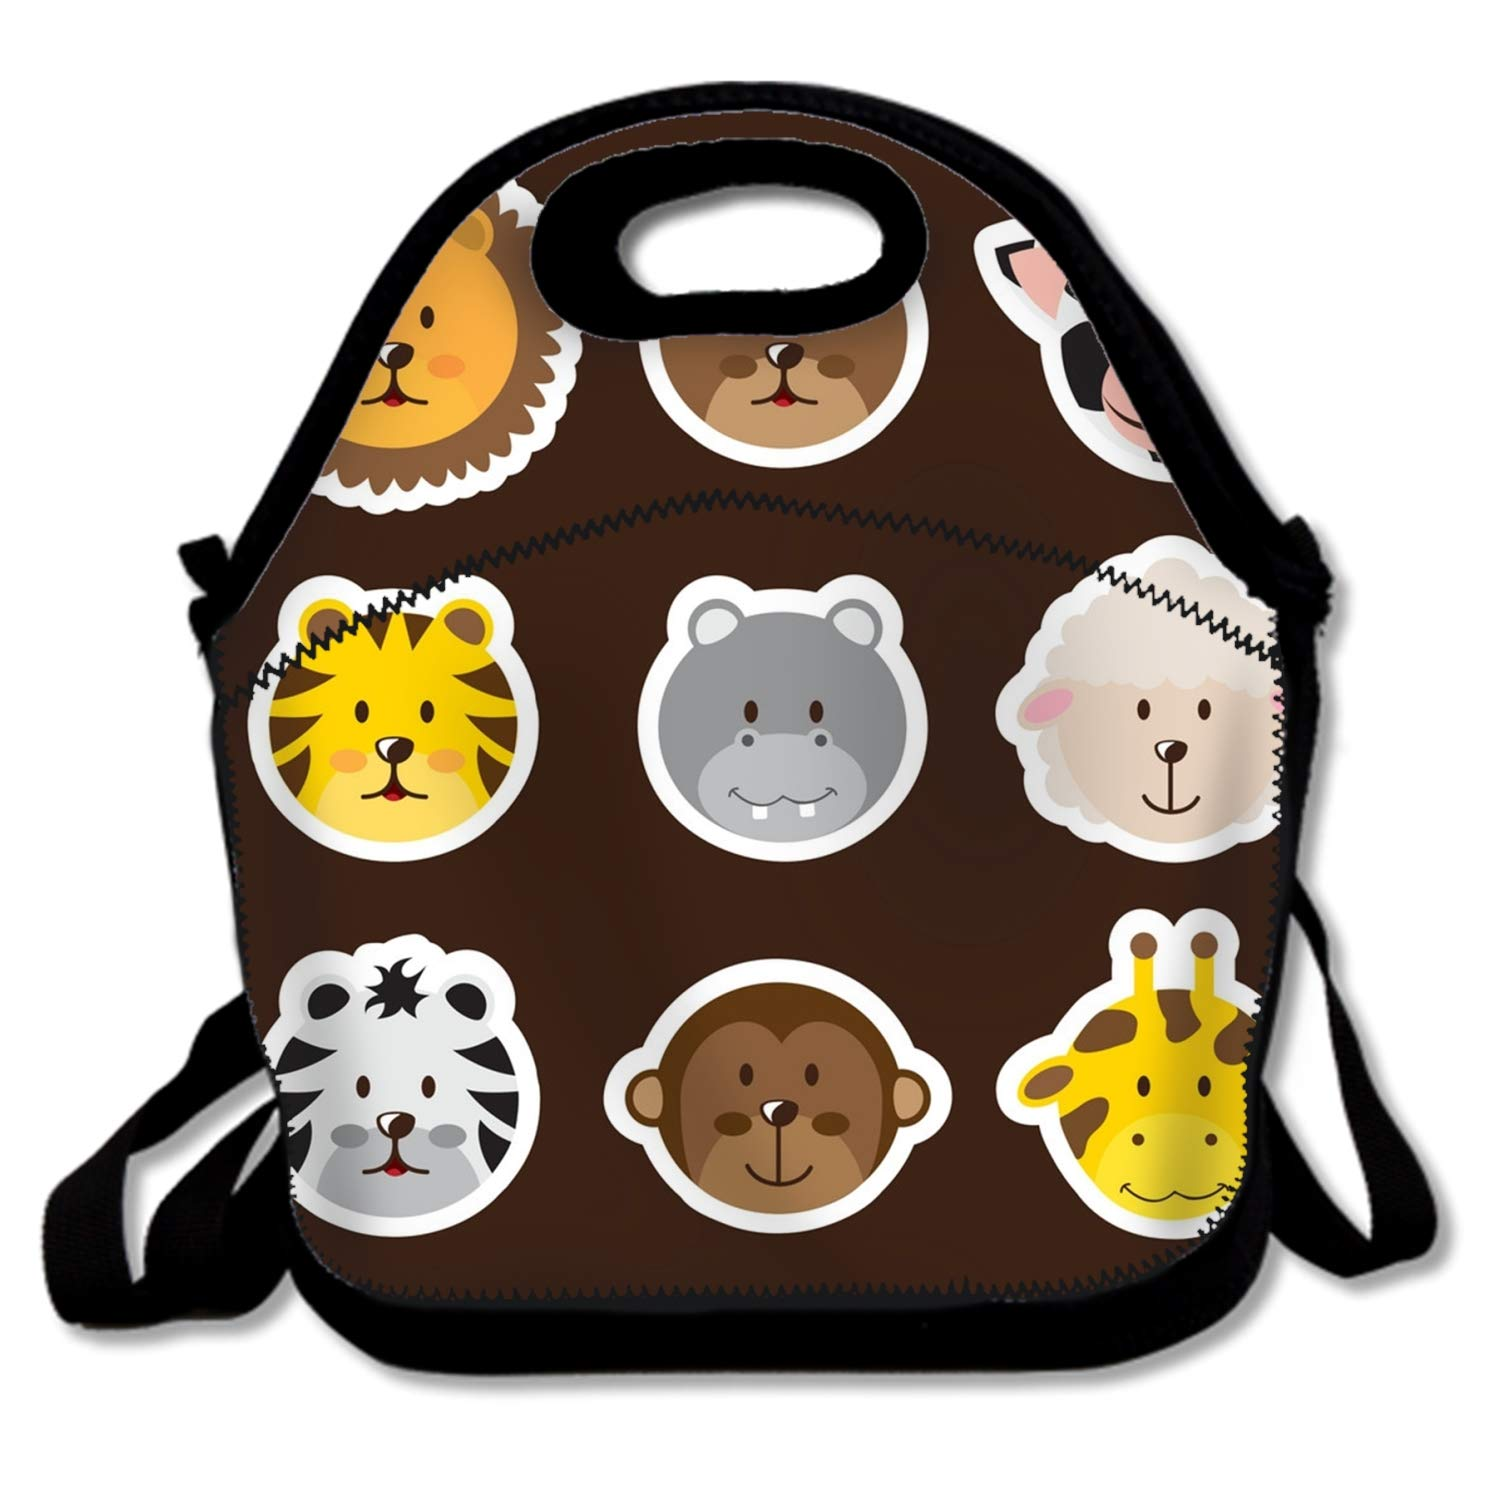 Premium Insulated Lunch Bag with Shoulder Strap Cute Animals Lunch Box